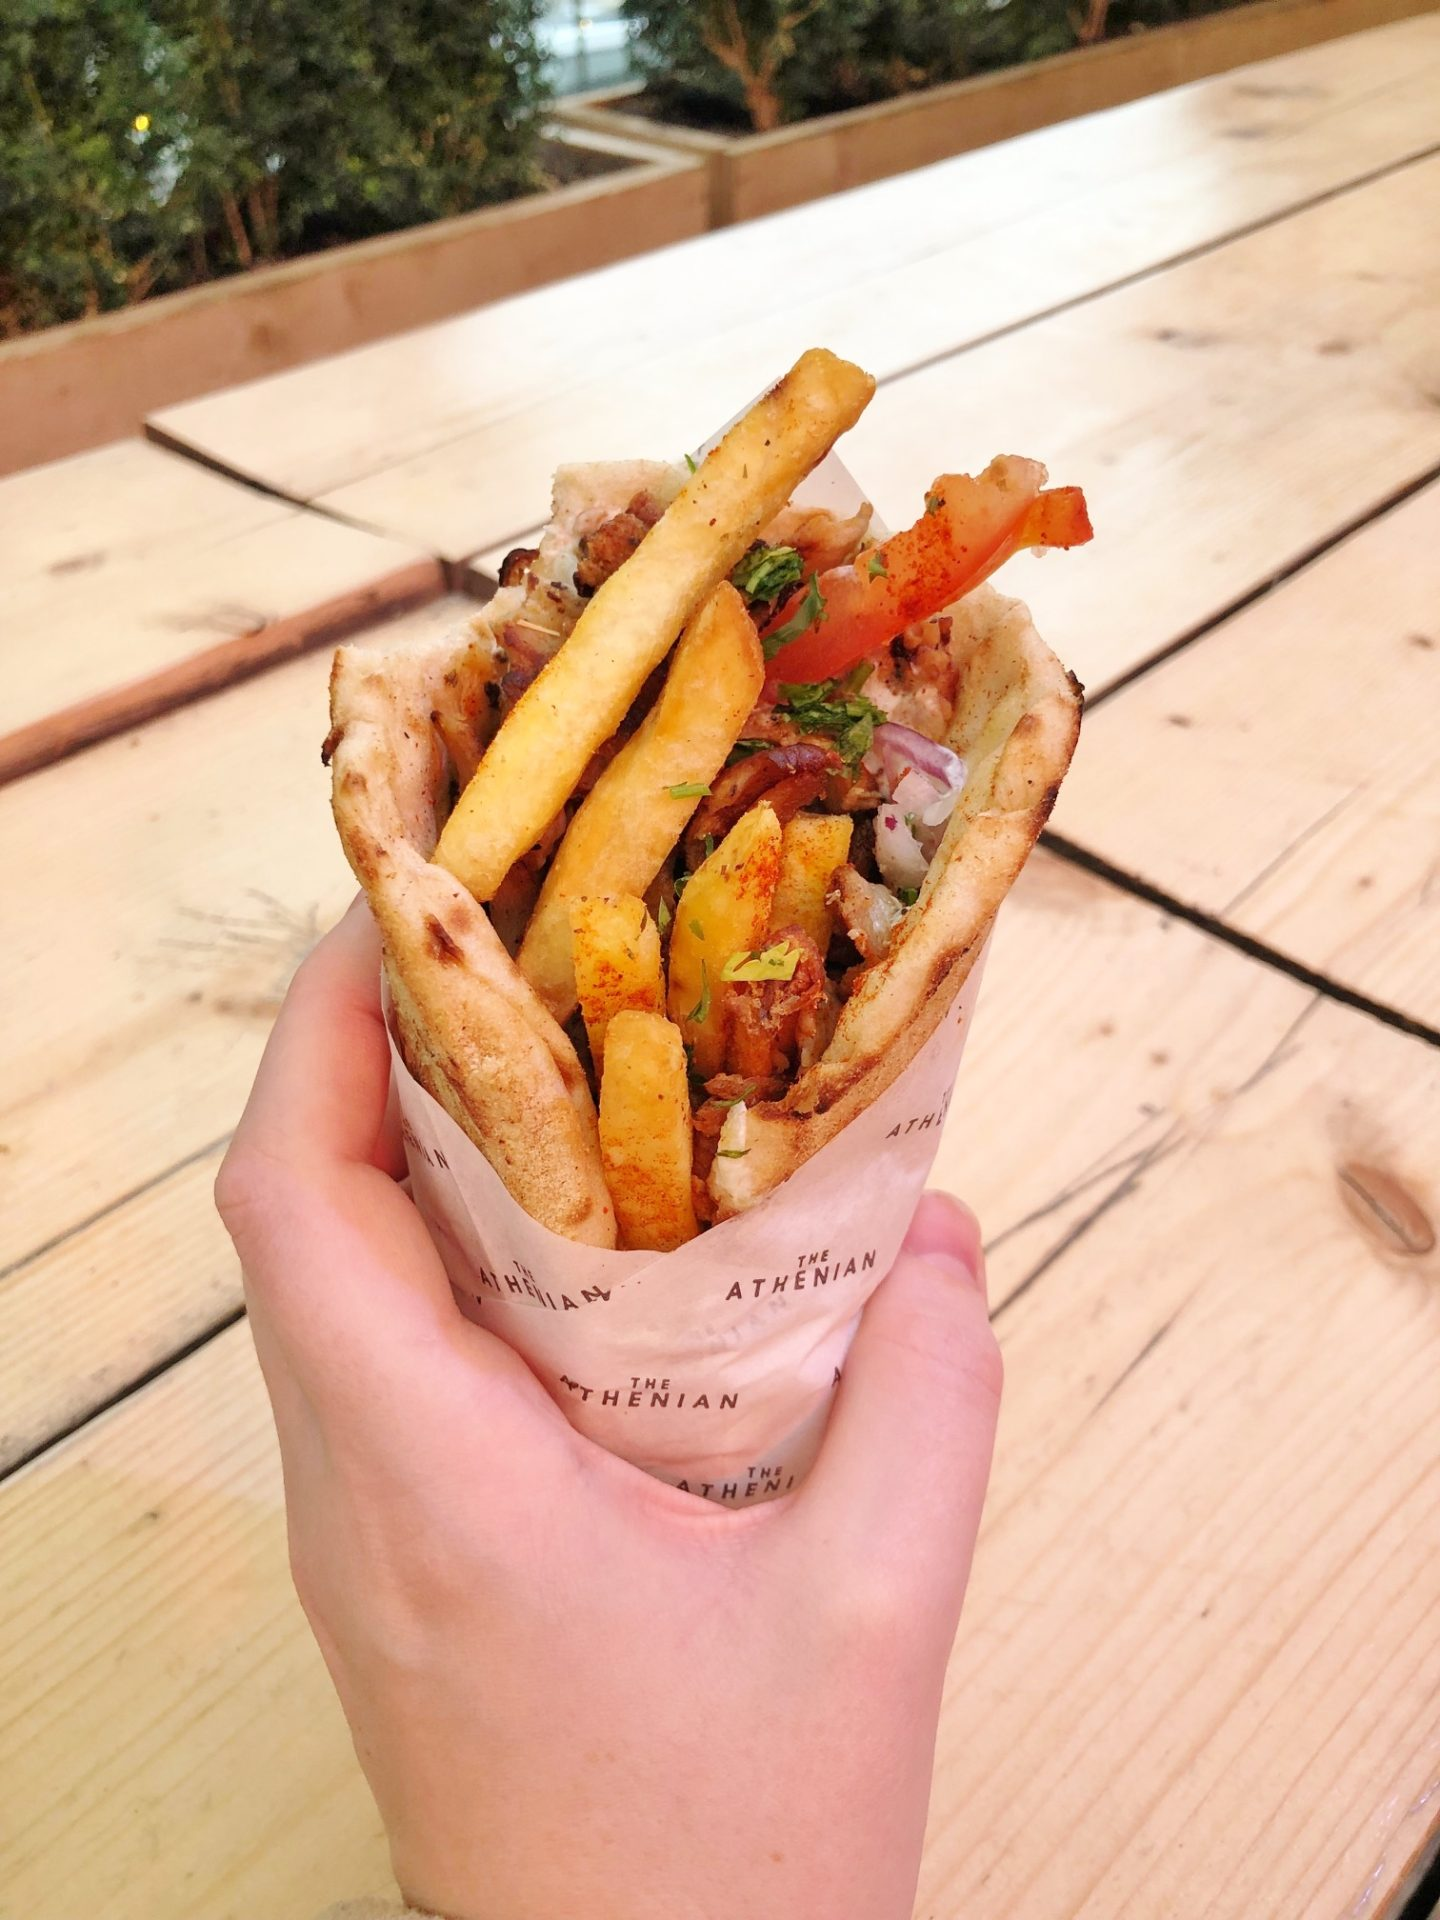 The Athenian London Pork Gyro